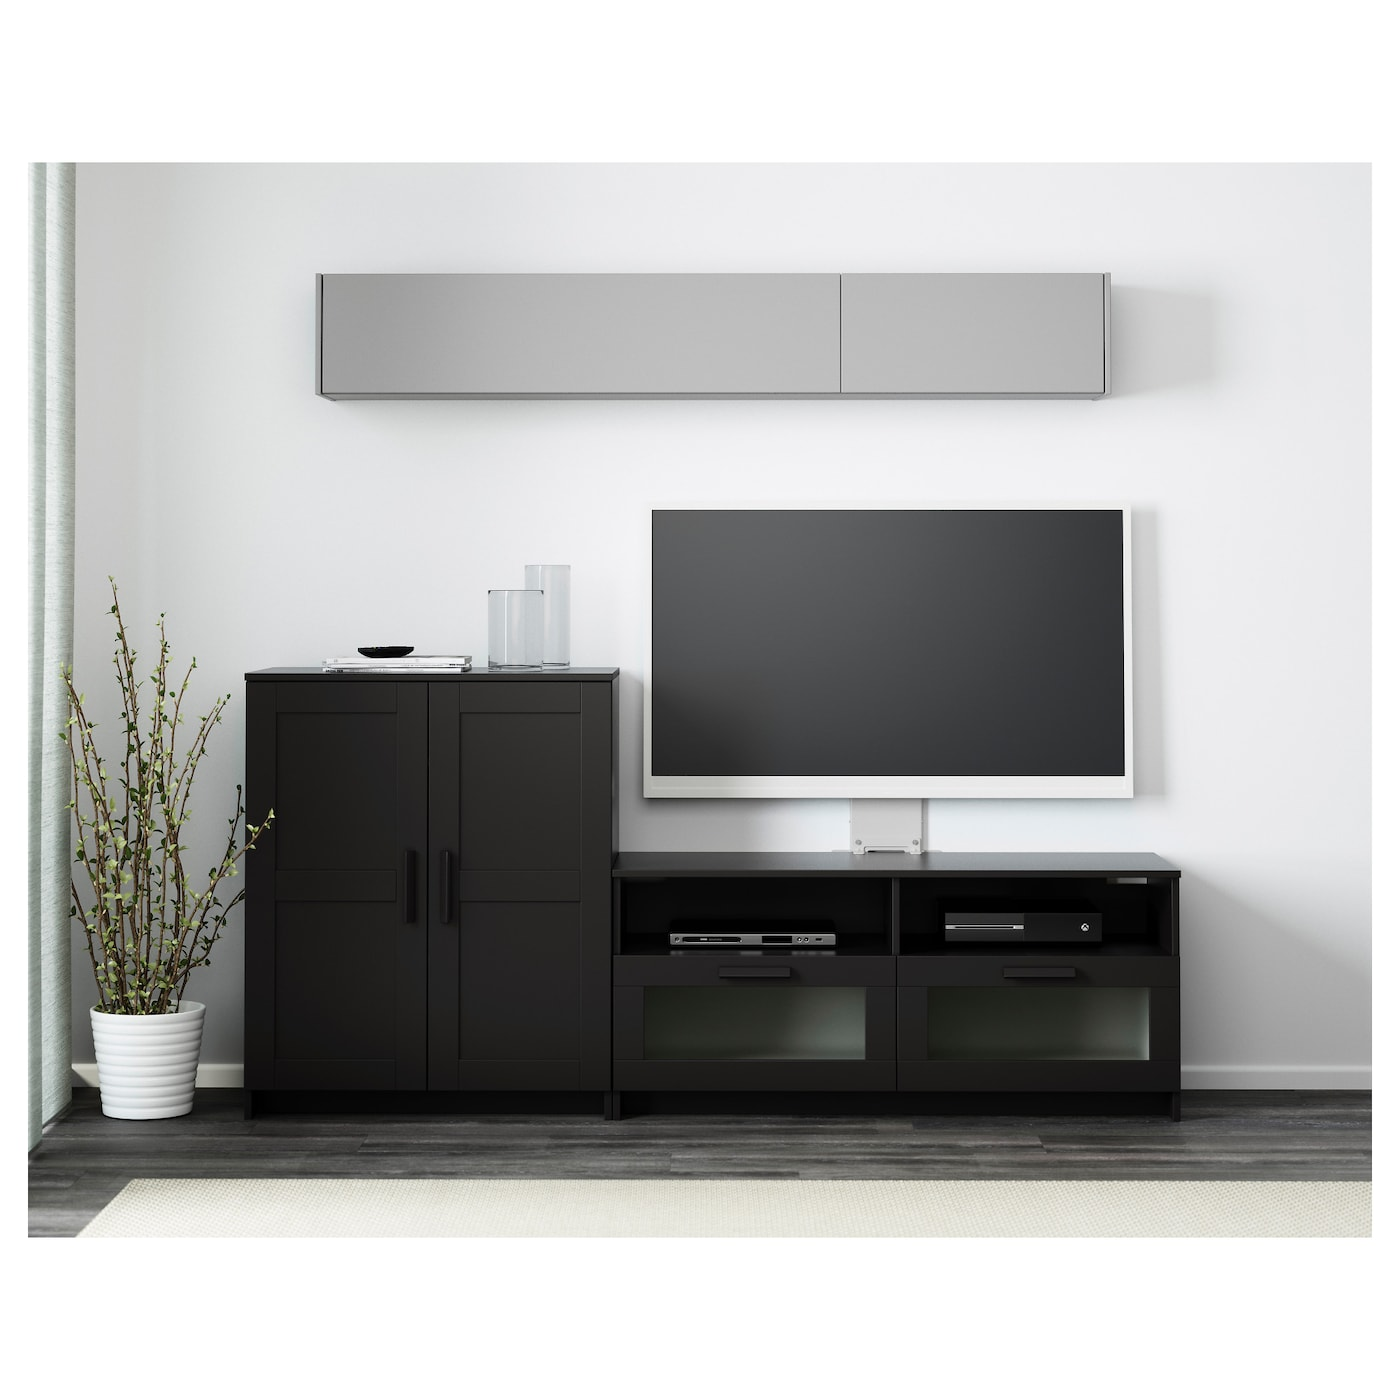 Merveilleux IKEA BRIMNES TV Storage Combination Adjustable Shelves, So You Can  Customise Your Storage As Needed